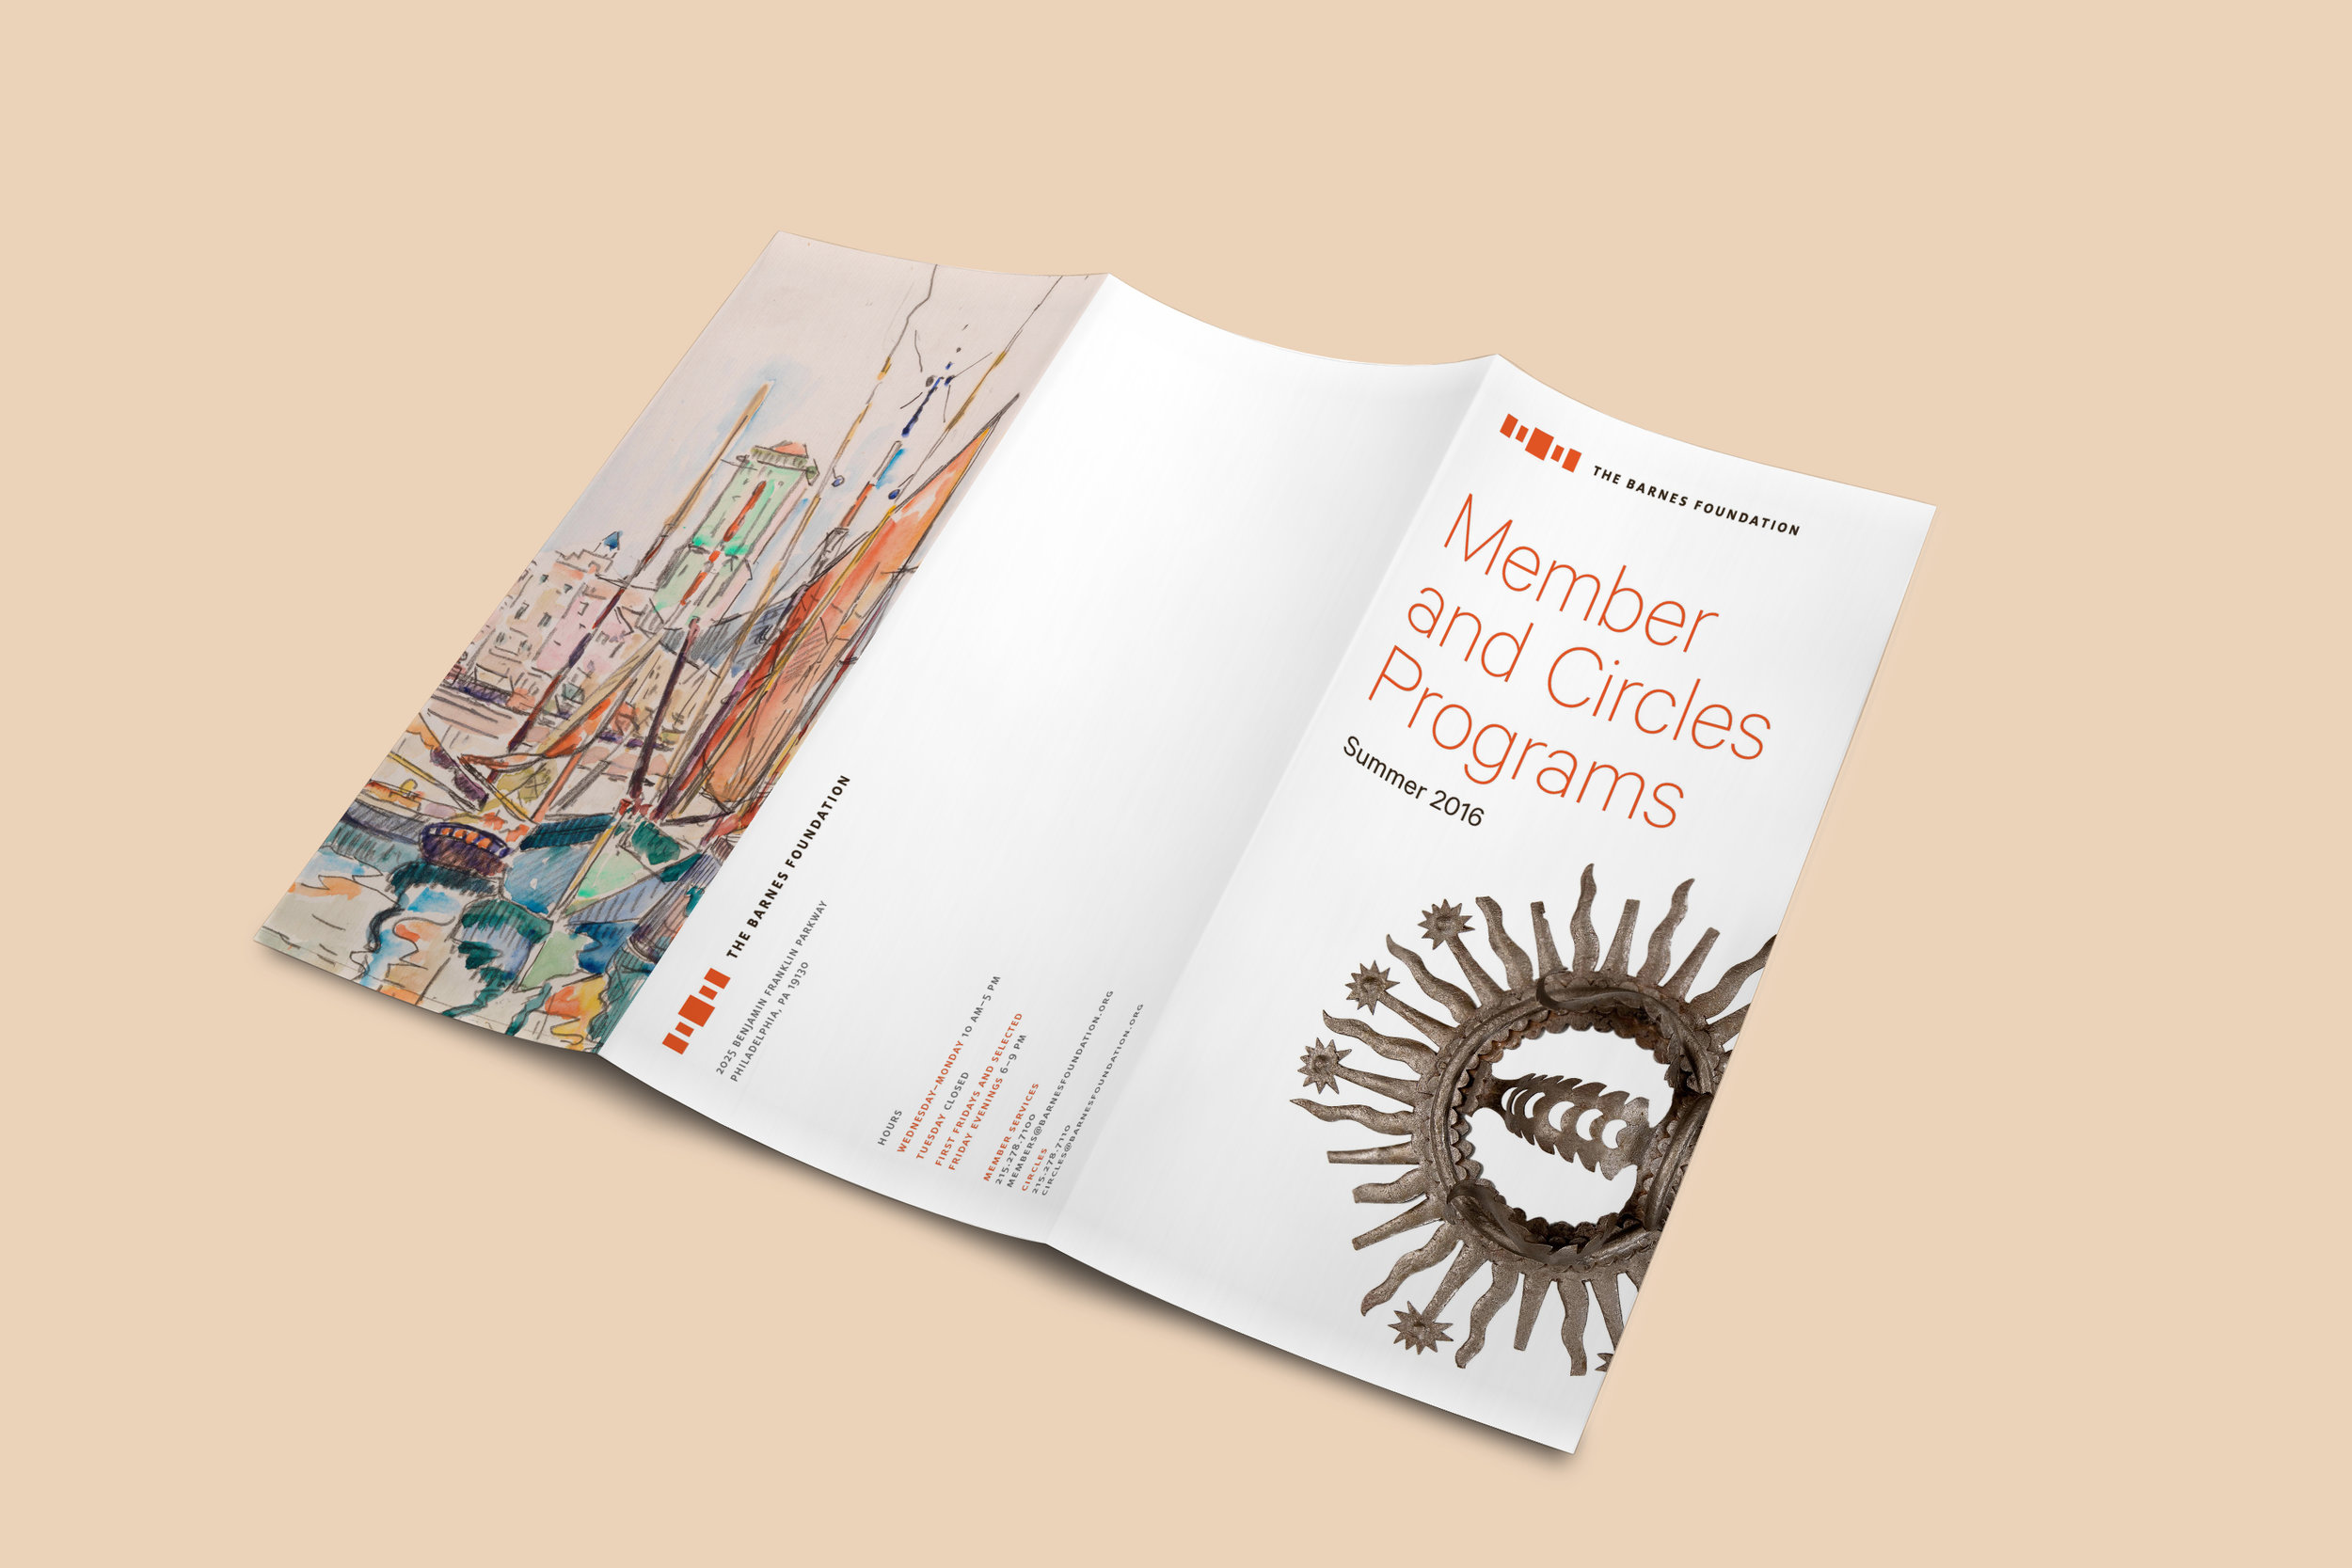 TheBarnesFoundation_PamphletMailer_Mockup_Outside.jpg